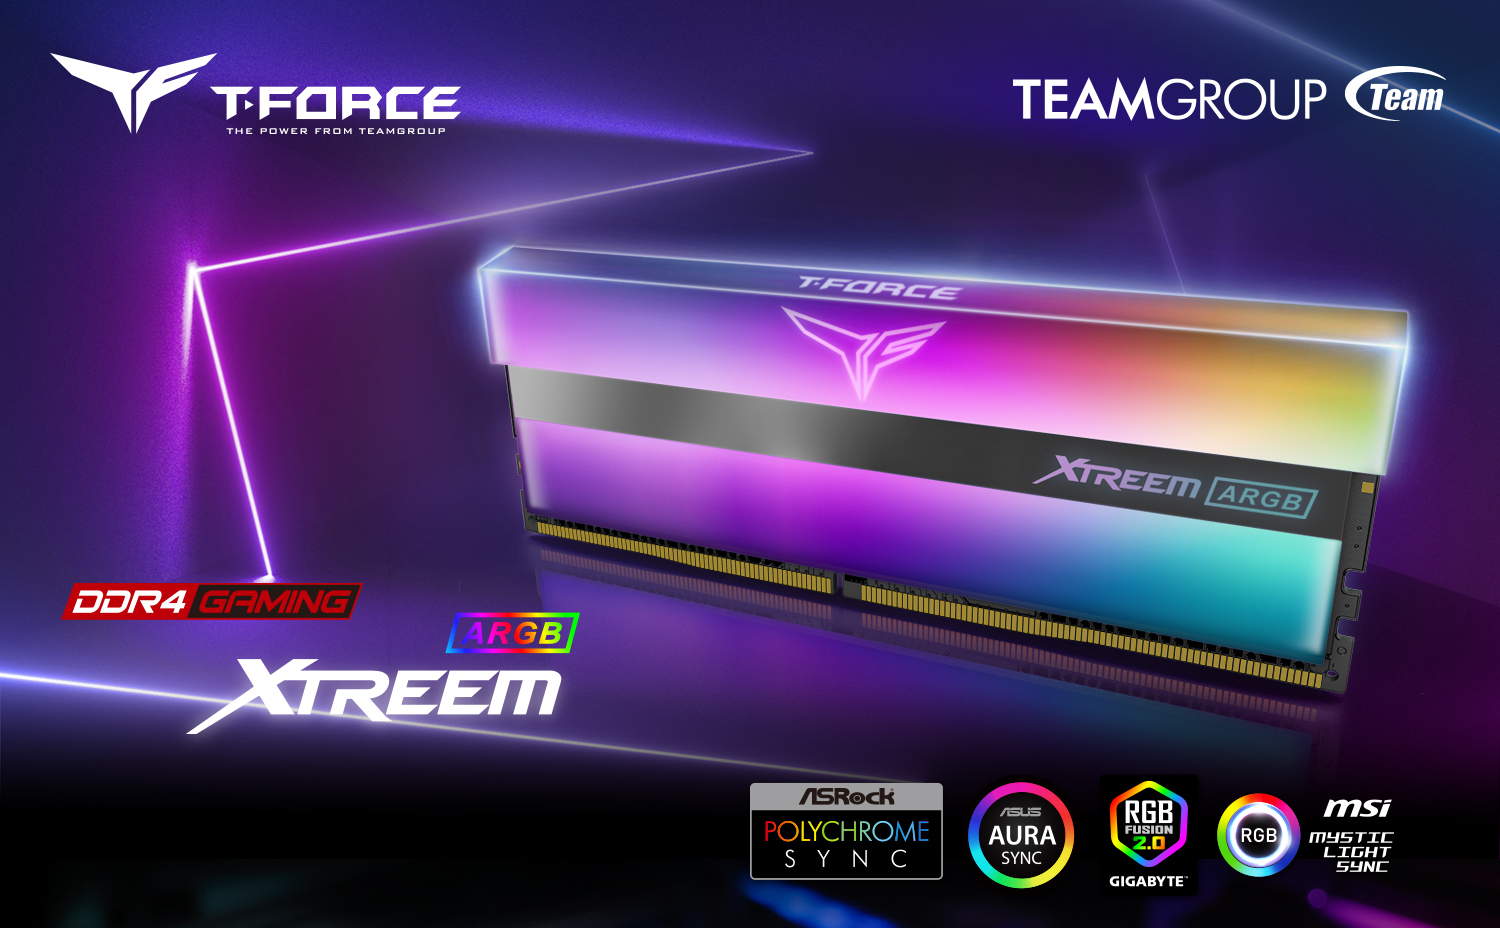 Team T-Force XTREEM ARGB Desktop Memory Model side view and Team Group logo